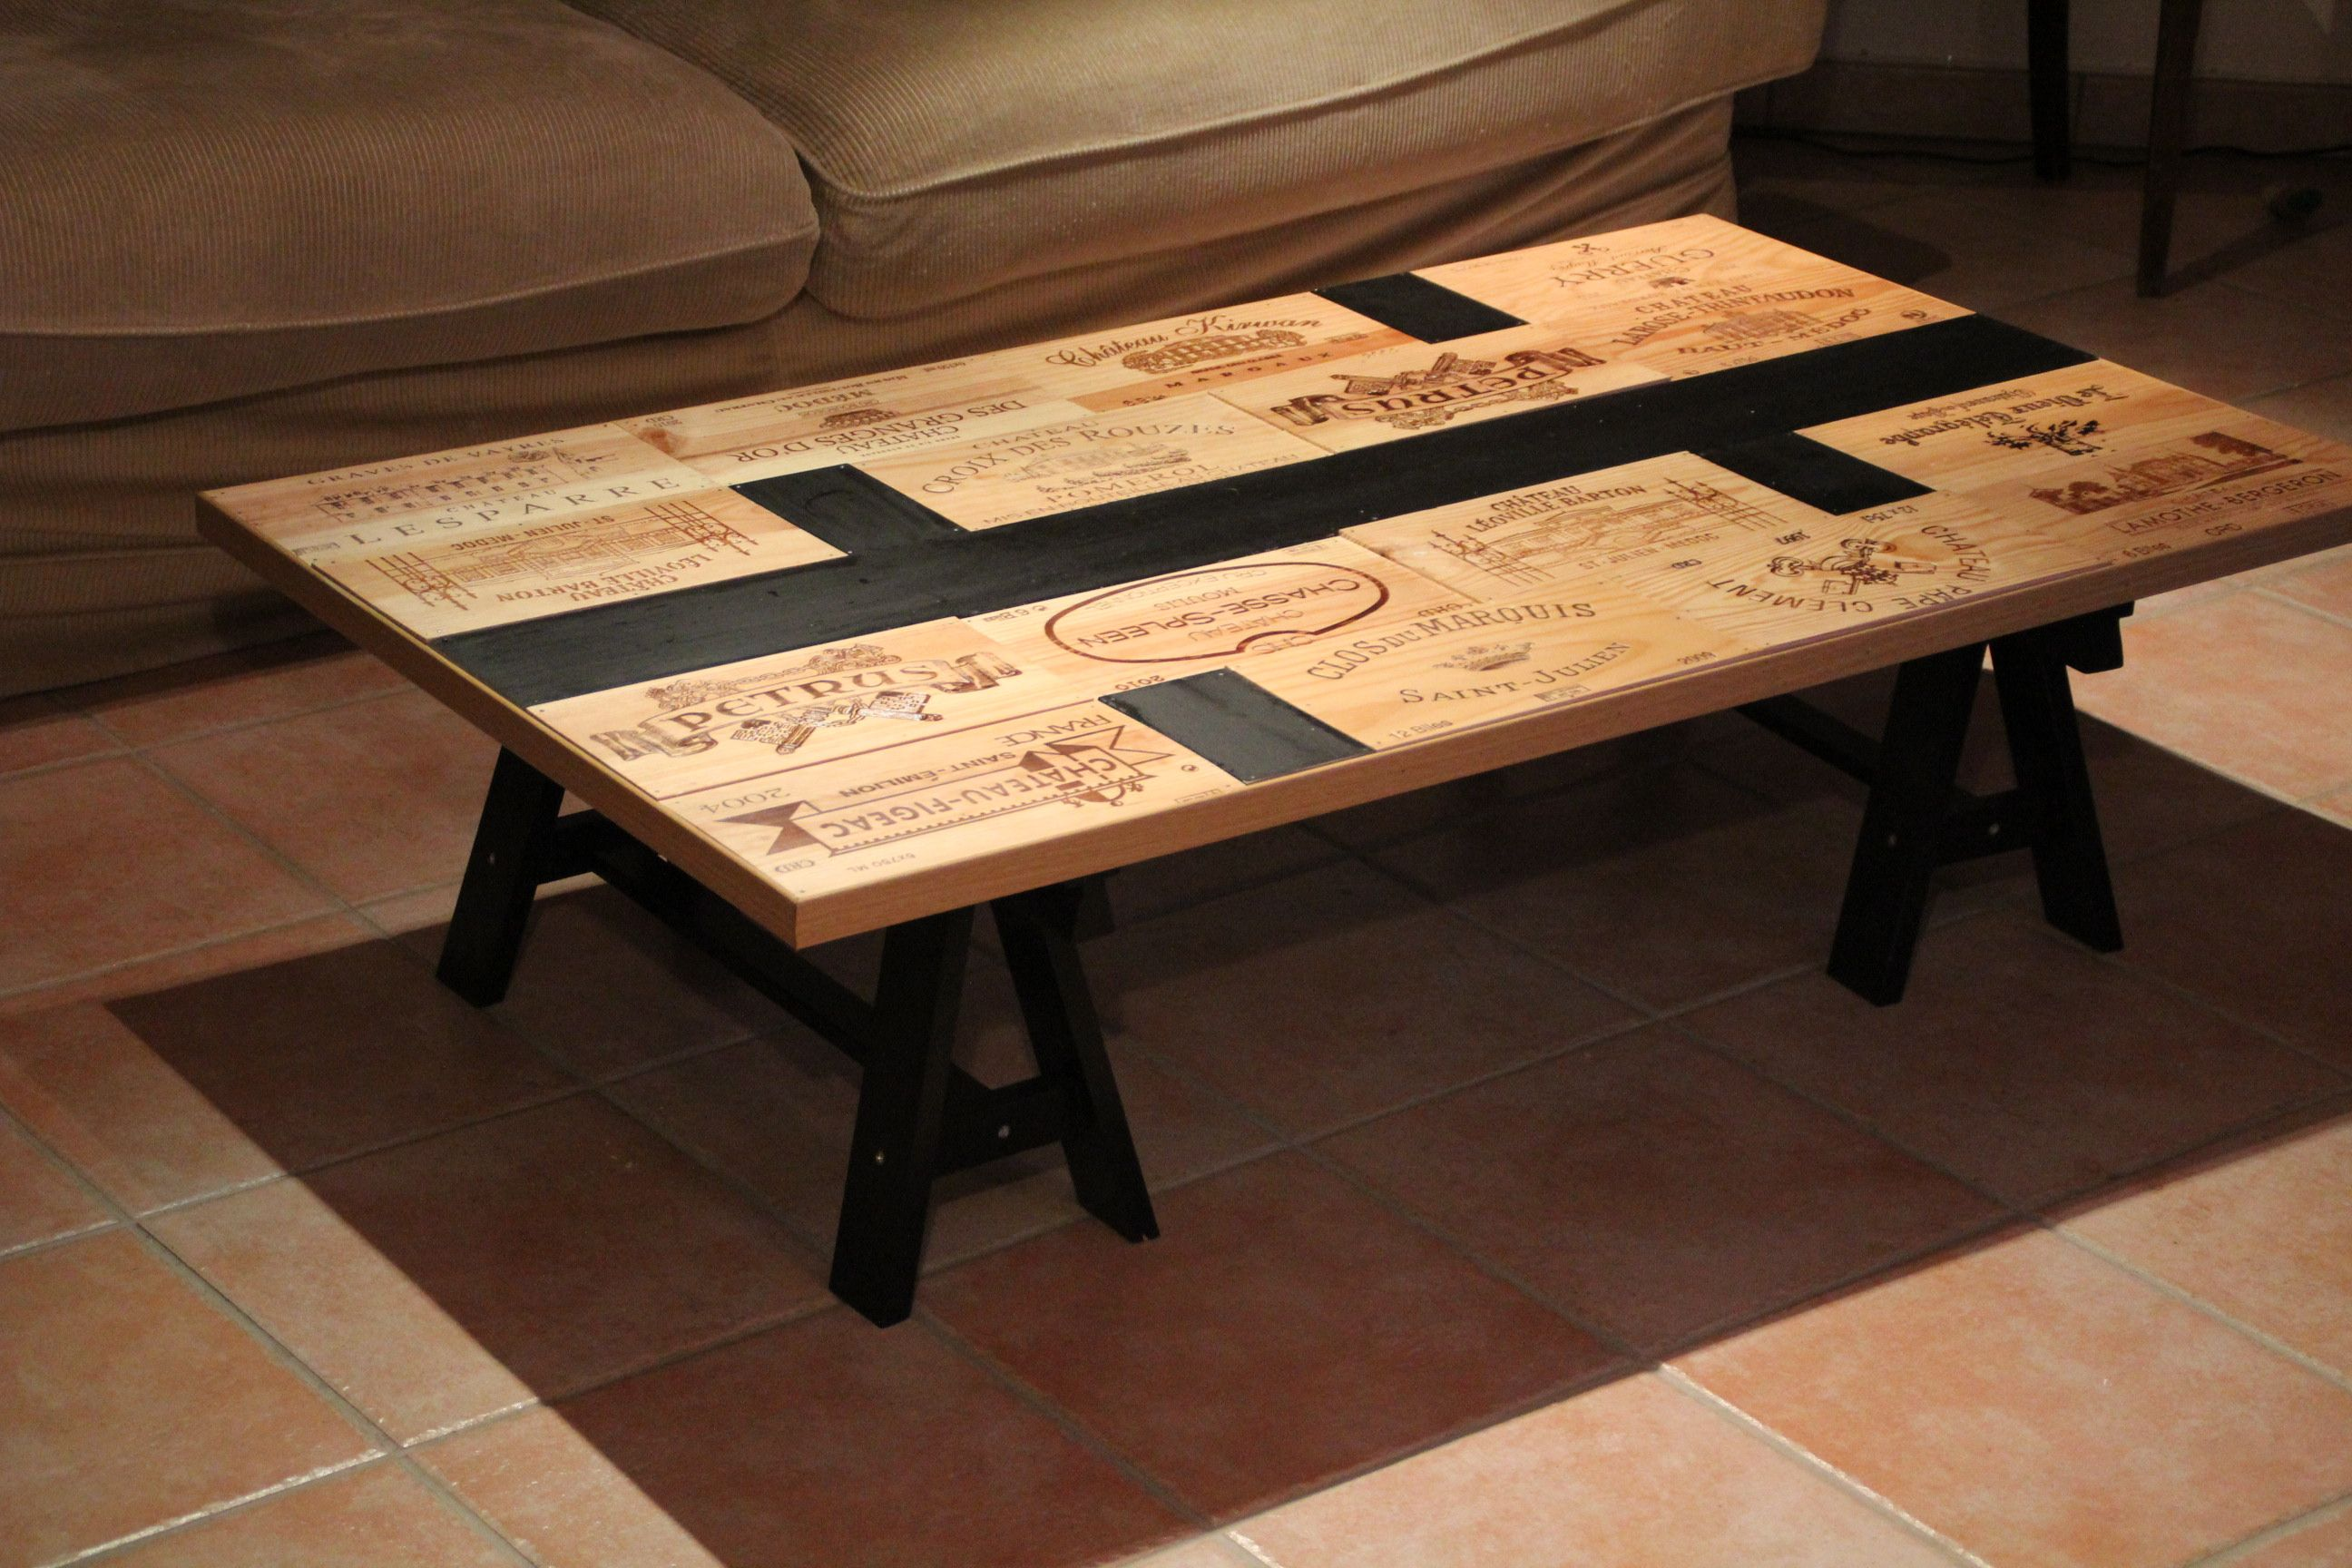 Permalink to Incroyable De Table Basse Design